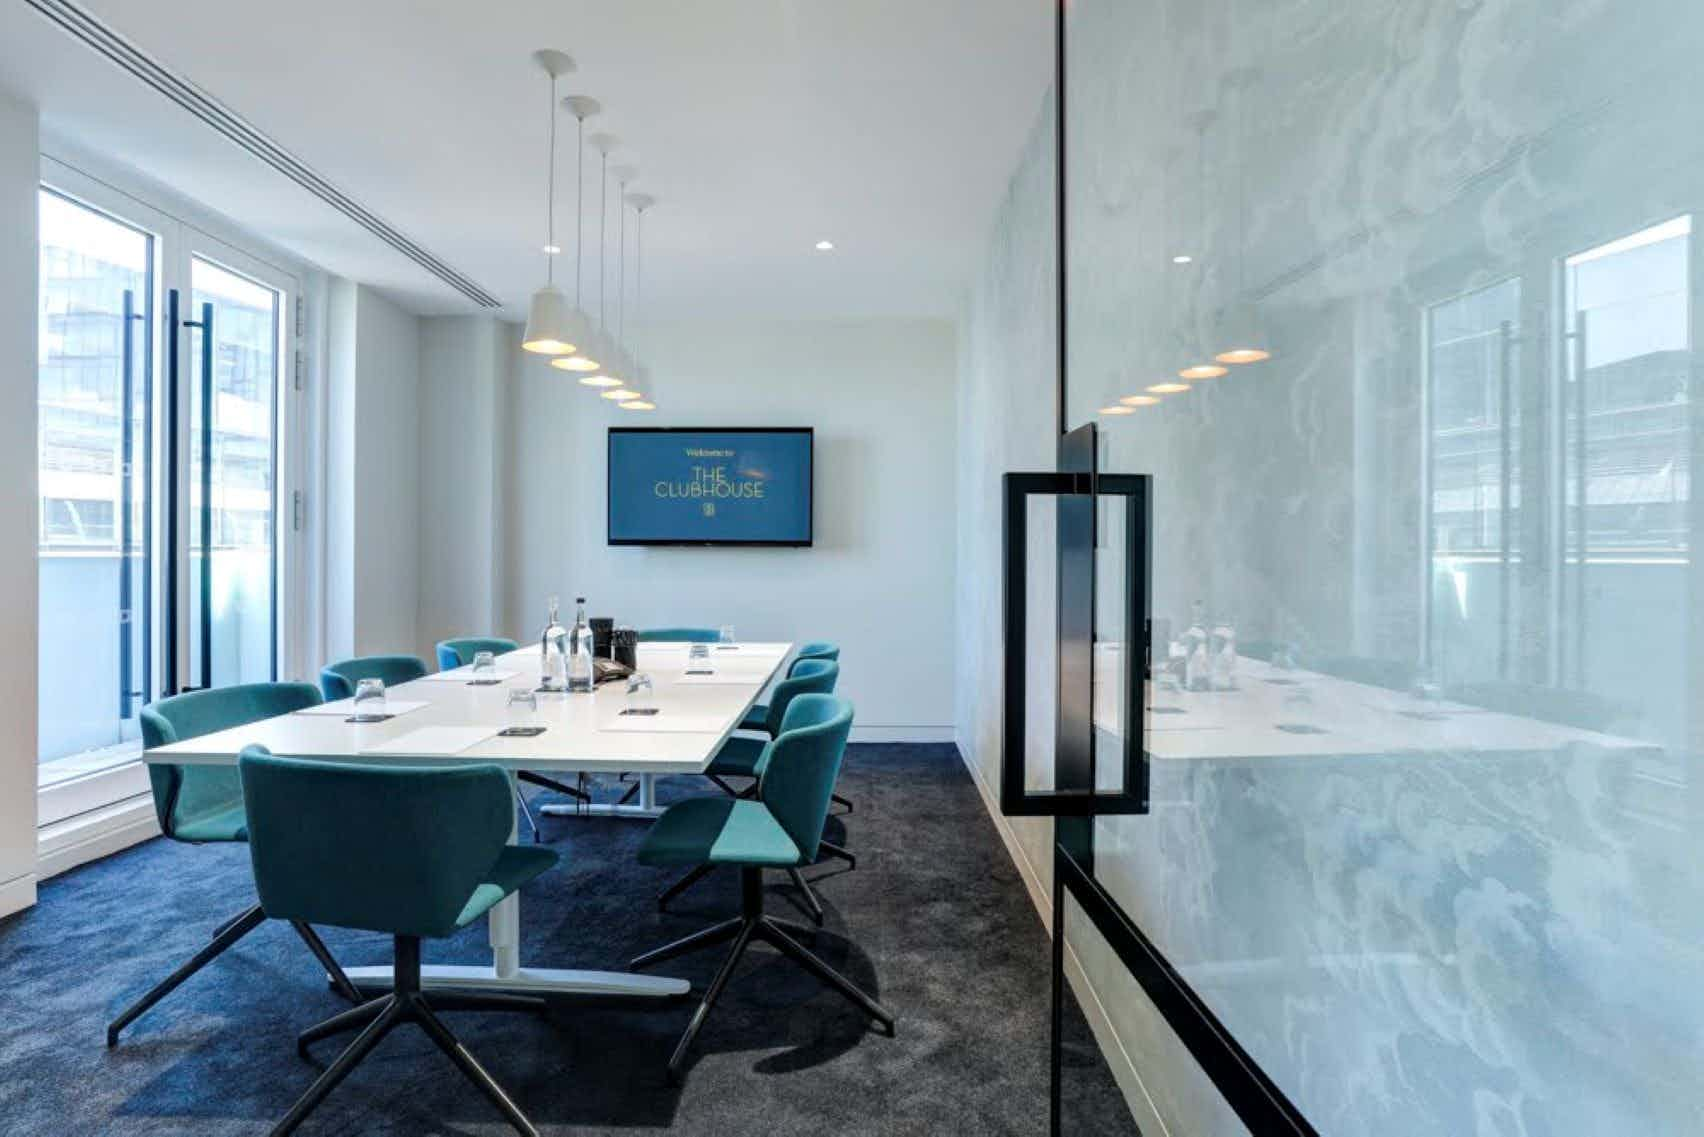 Meeting Room 1, The Clubhouse, Holborn Circus